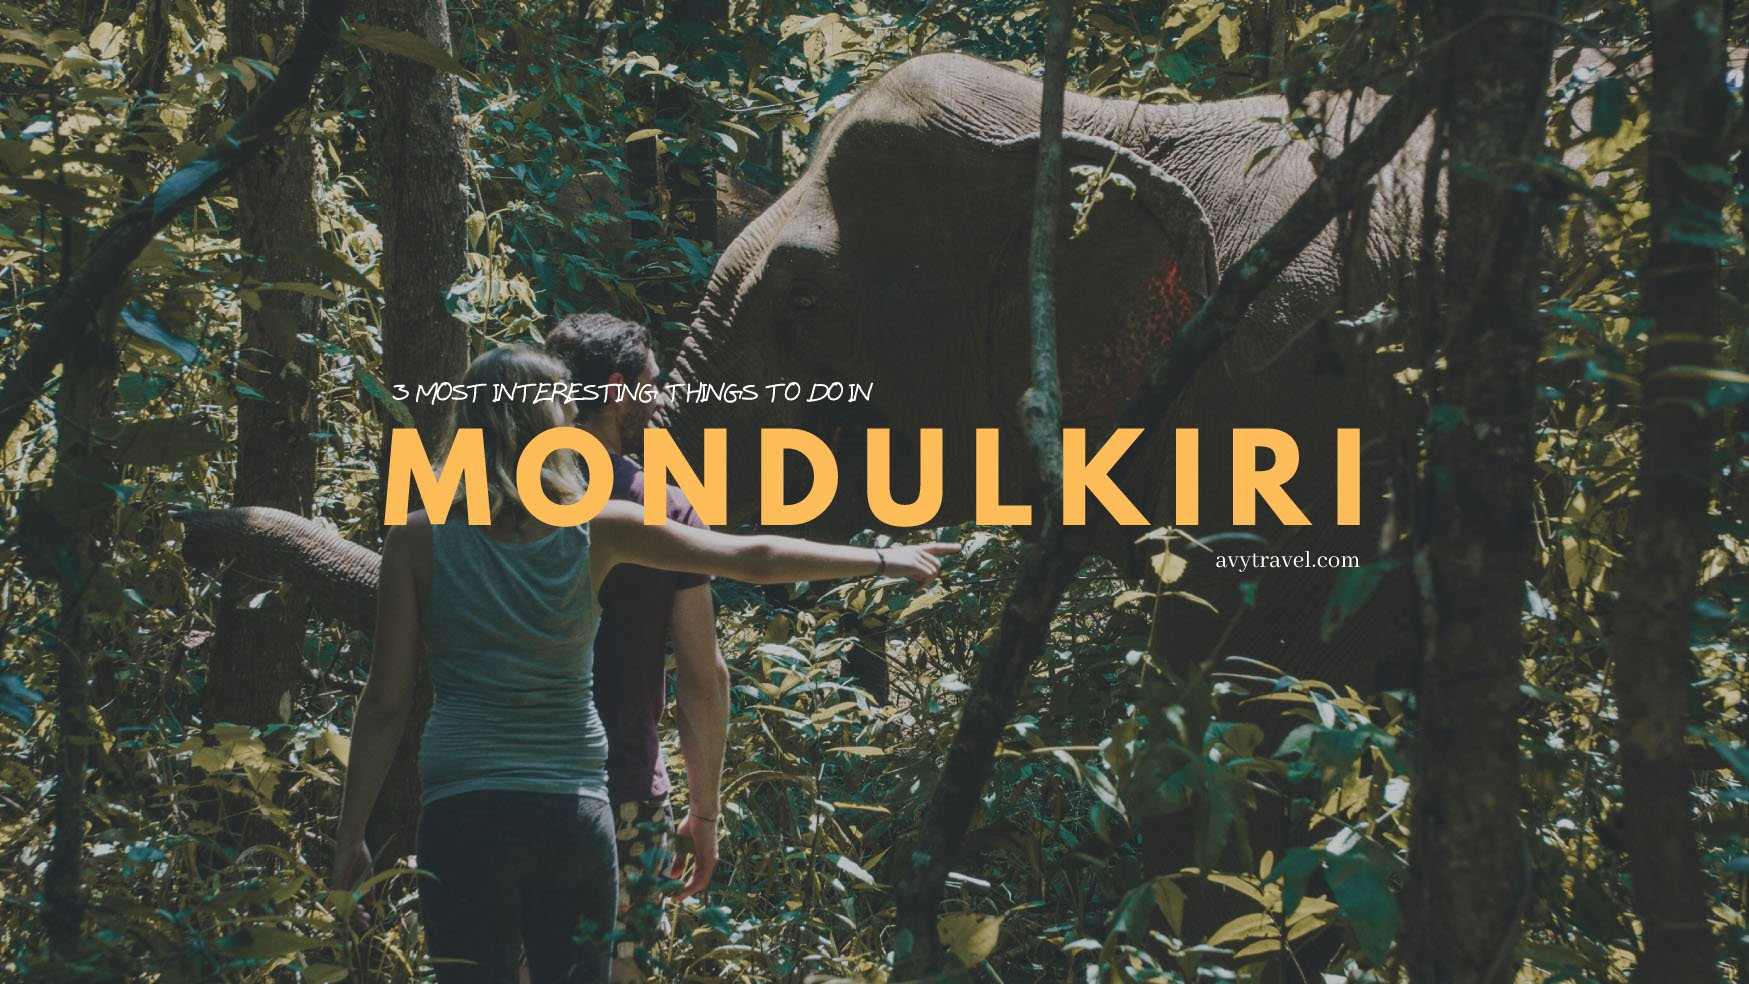 Mondulkiri: 3 Most Interesting Things to Do